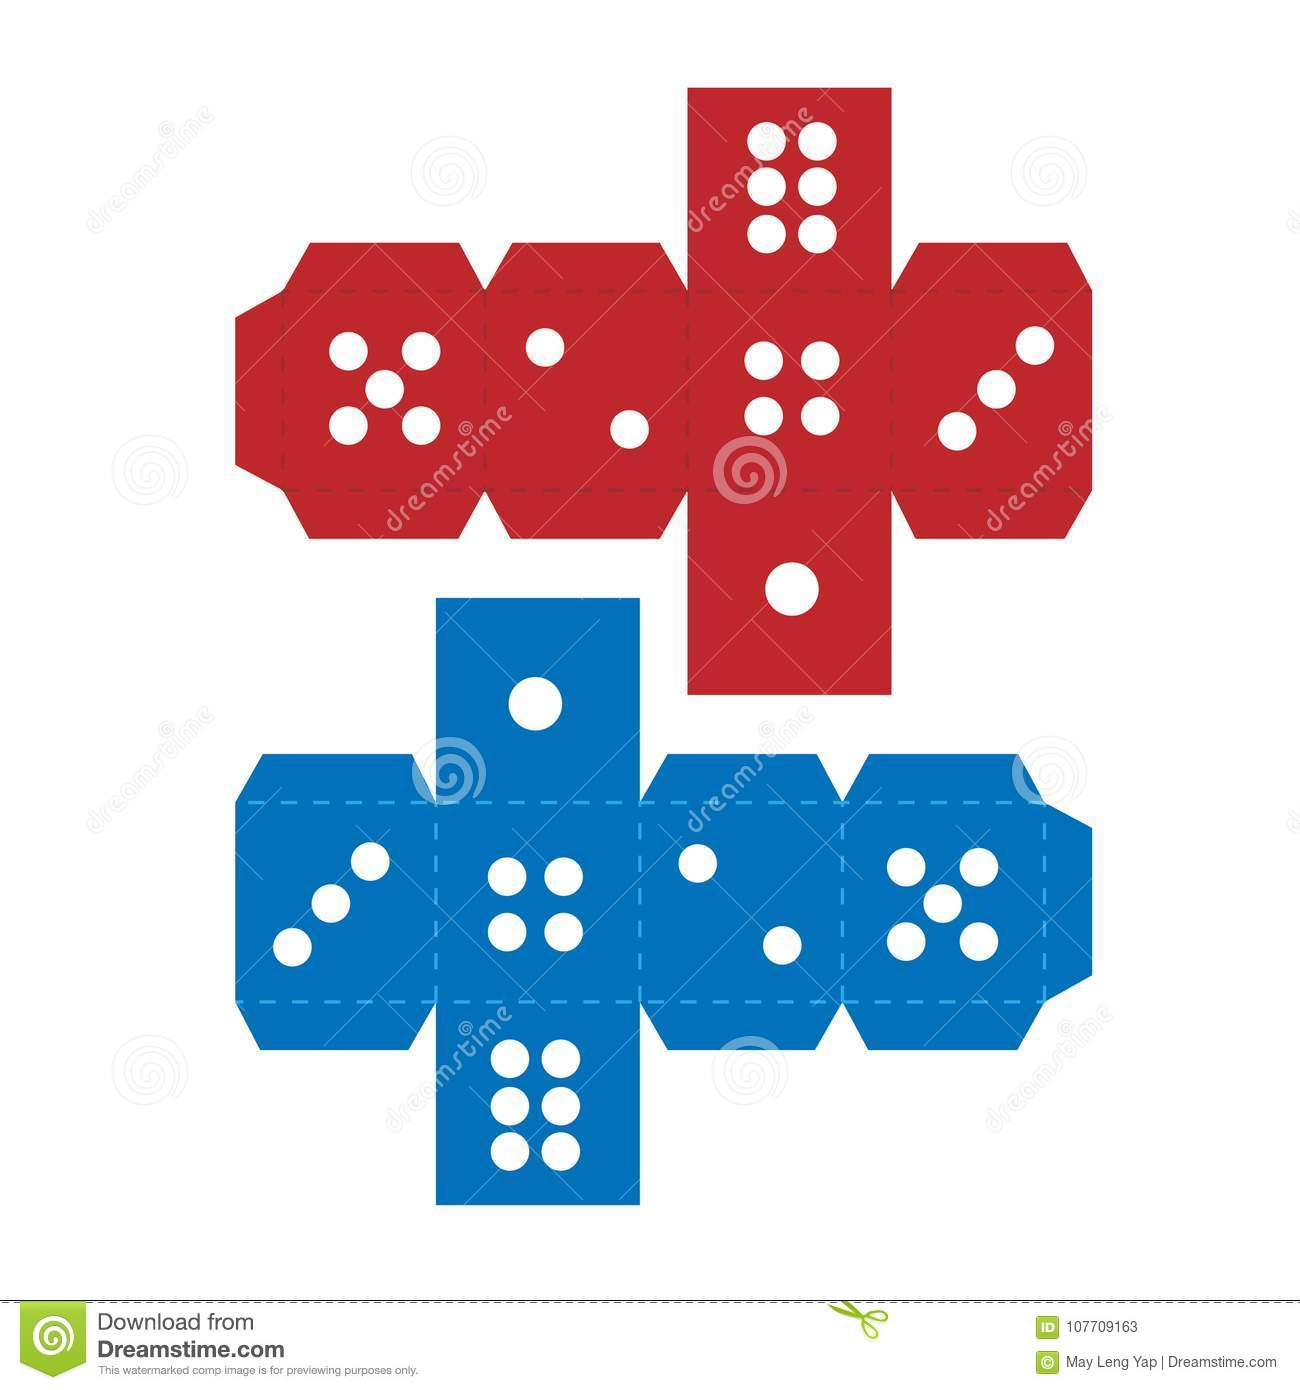 Paper Craft Dice Template Stock Illustration. Illustration Of Children